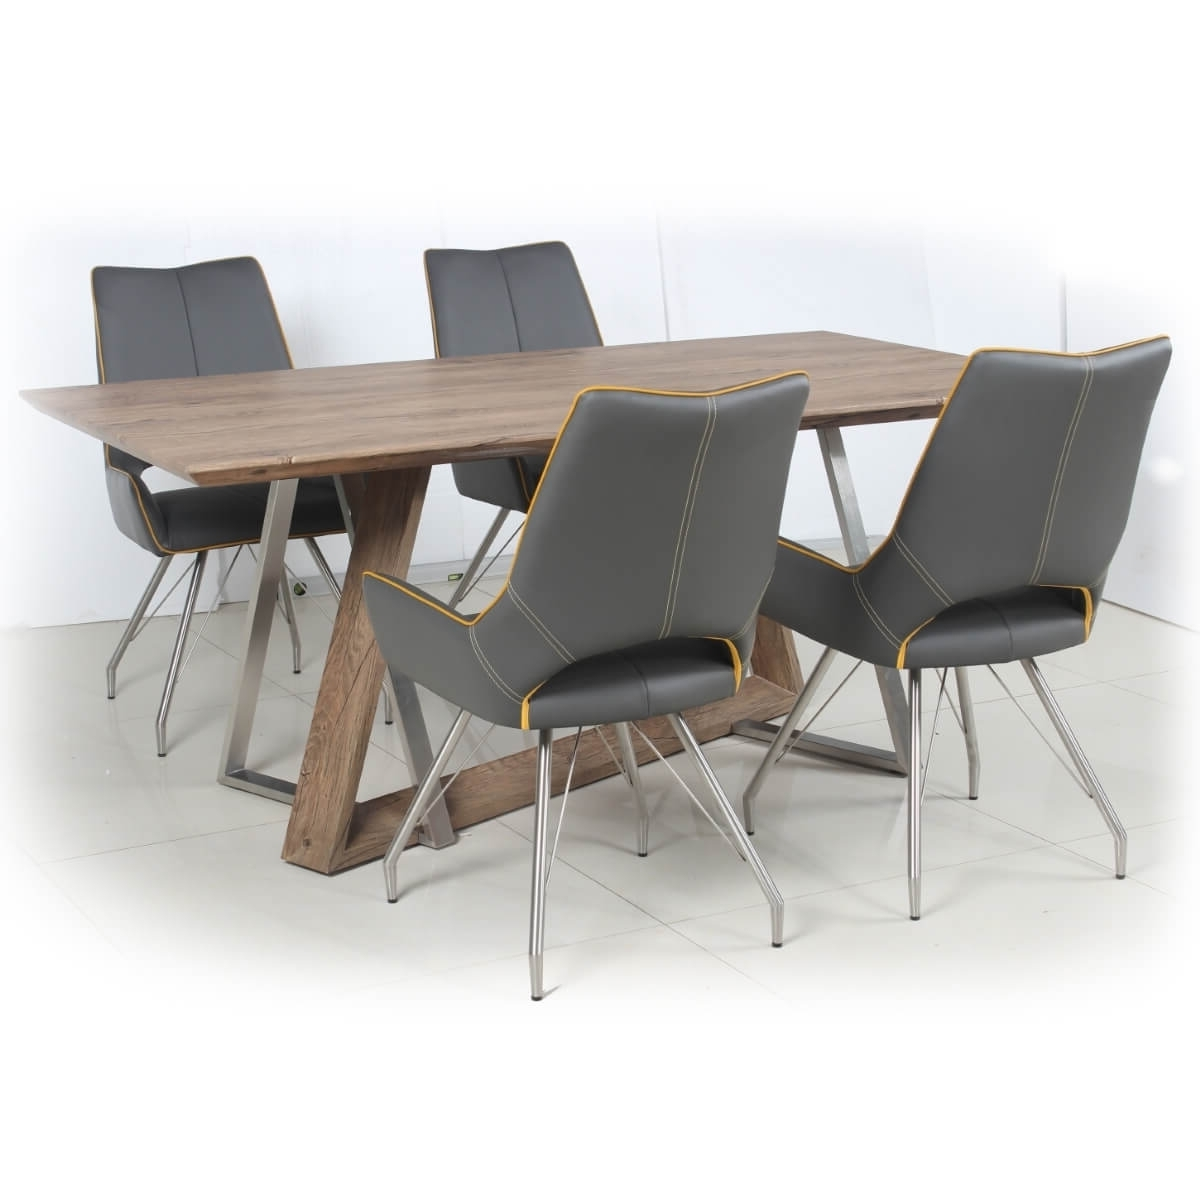 Grey Dining Chairs Within Well Known Dining Set – Industrial Style Wood Dining Table And 4 Grey Dining (View 9 of 25)